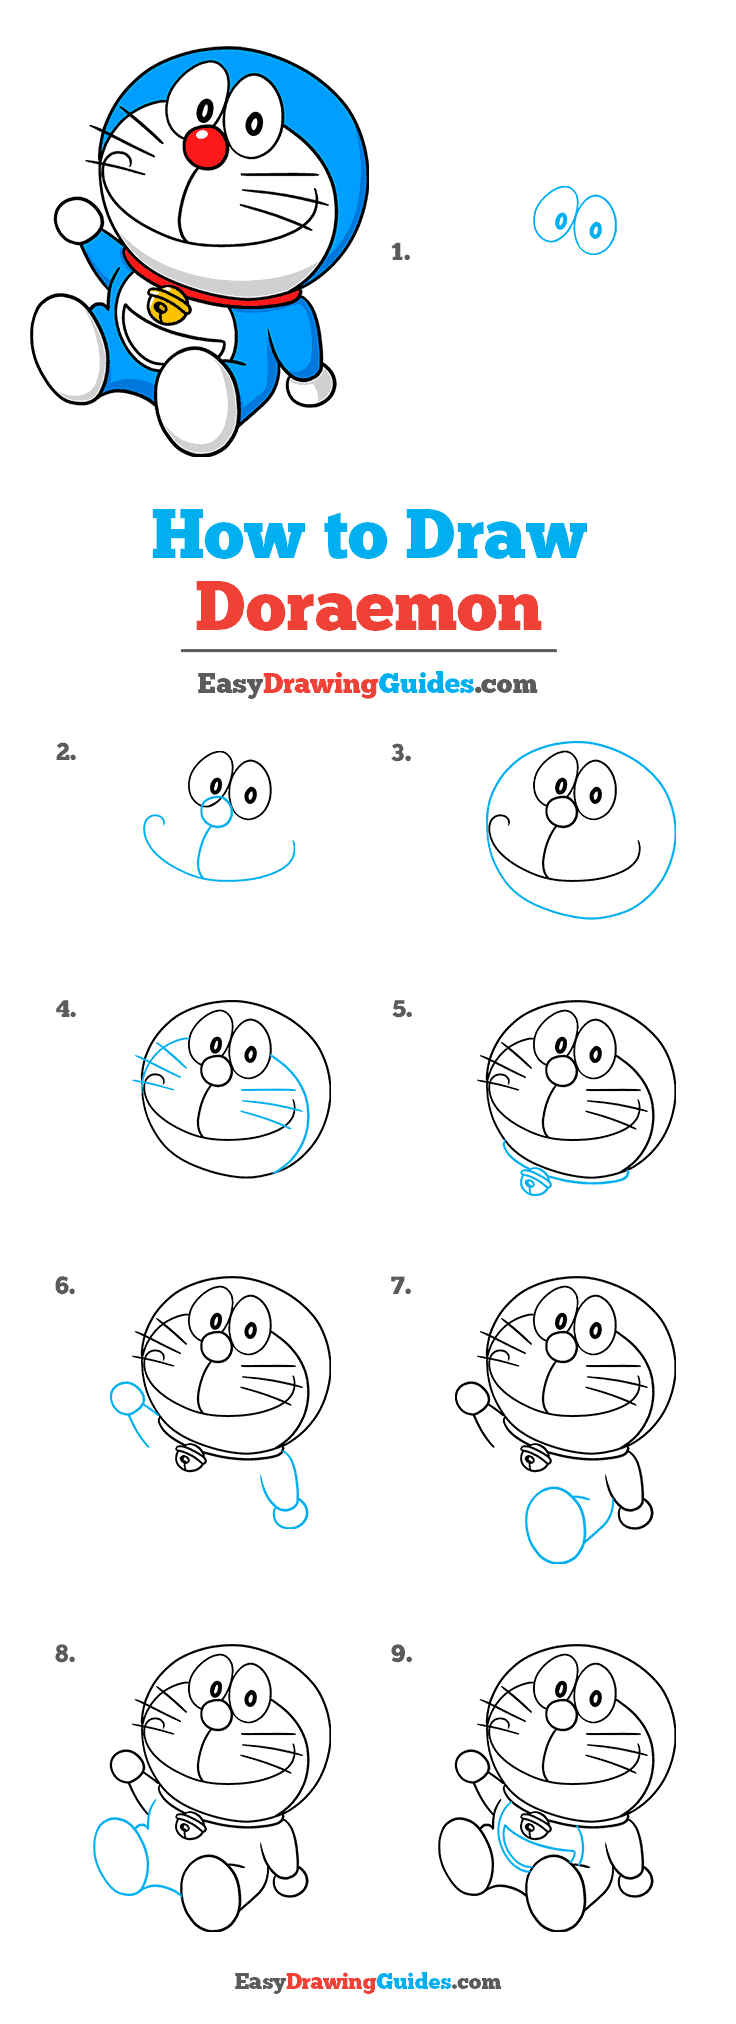 How to Draw Doraemon Step by Step Tutorial Image